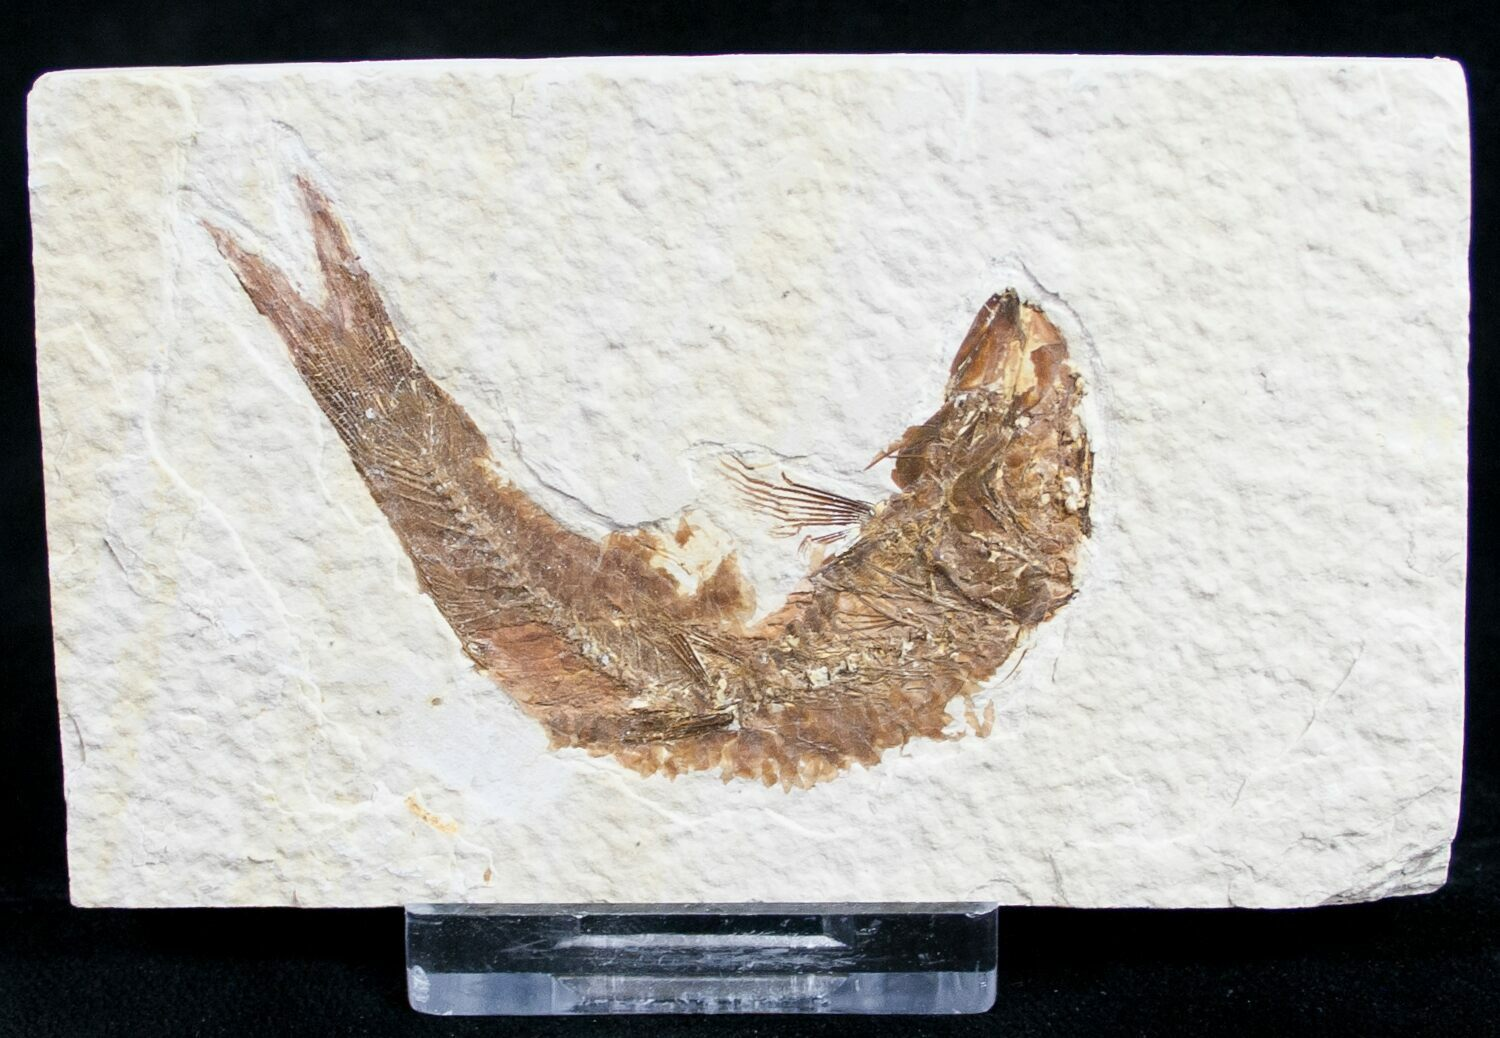 Bargain 3 knightia fossil fish wyoming for sale 9441 for Fish fossils for sale